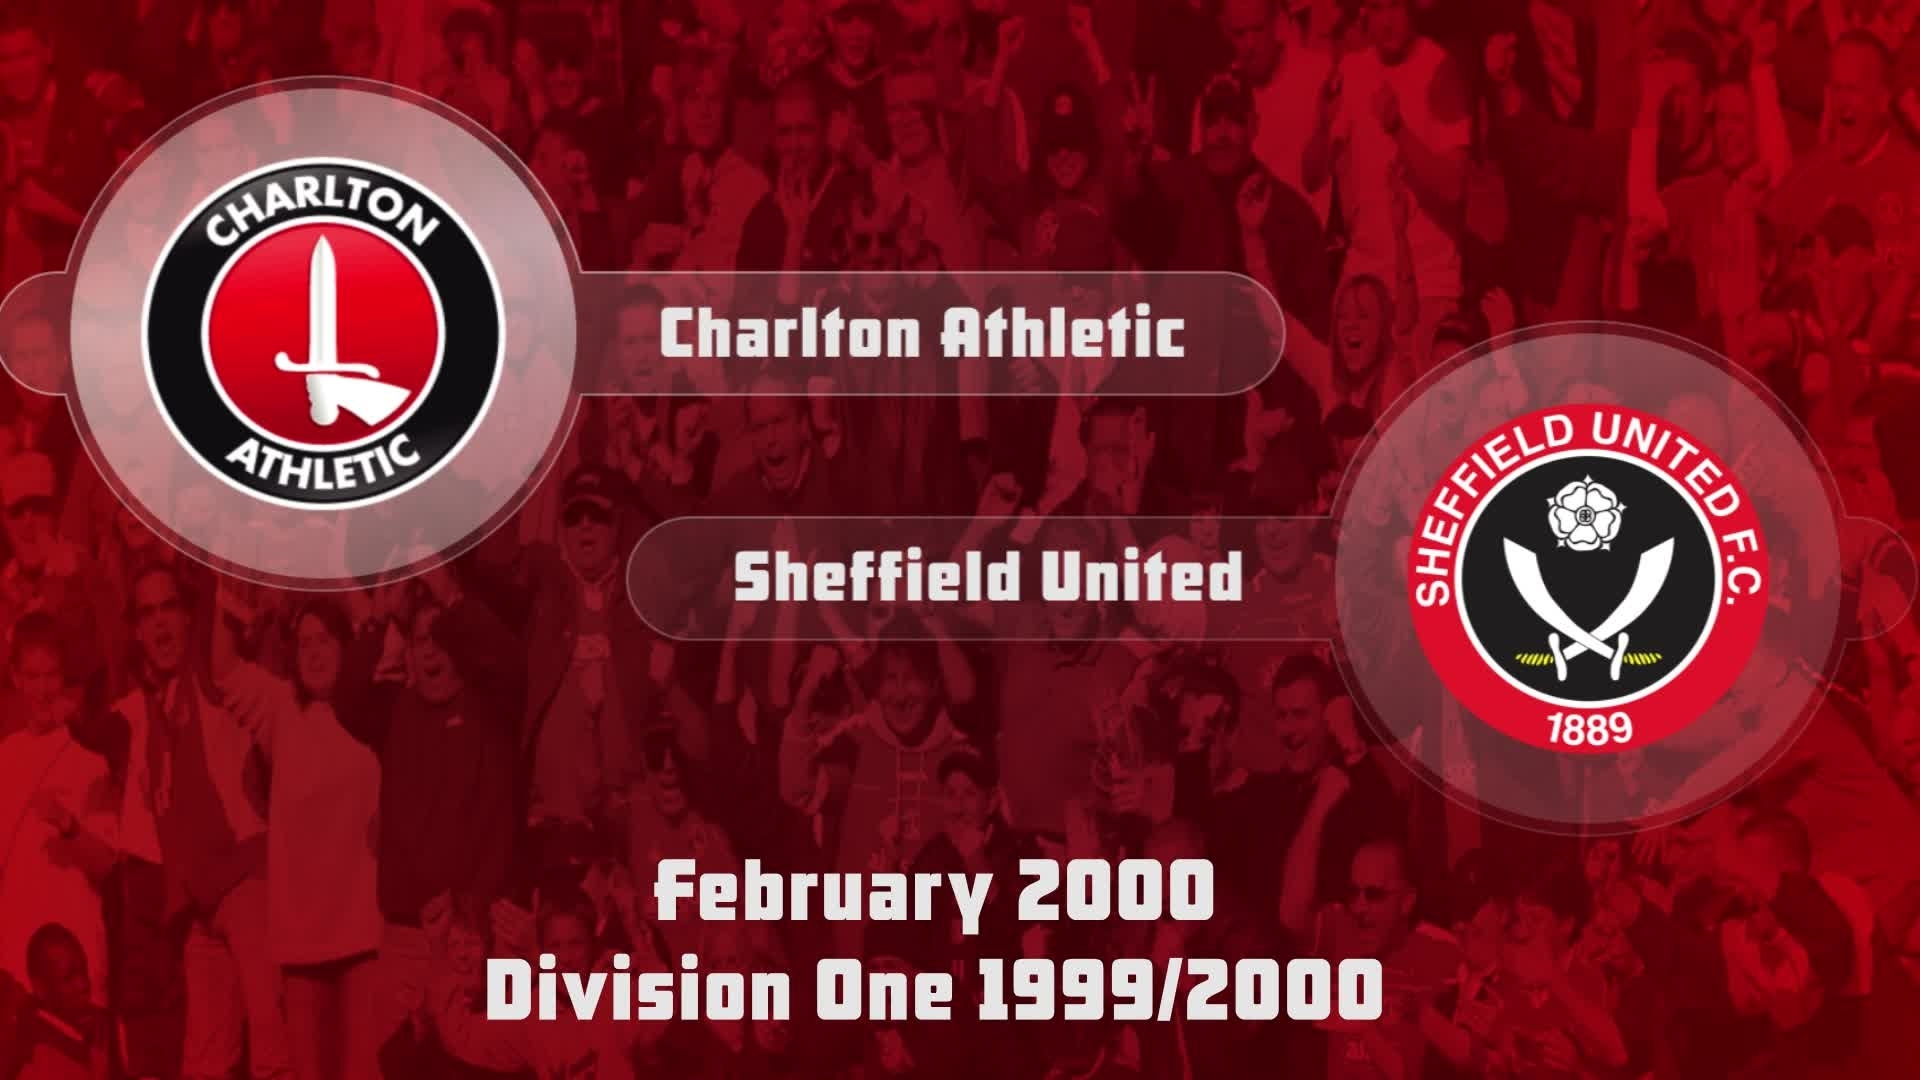 38 HIGHLIGHTS | Charlton 1 Sheffield United 0 (Feb 2000)